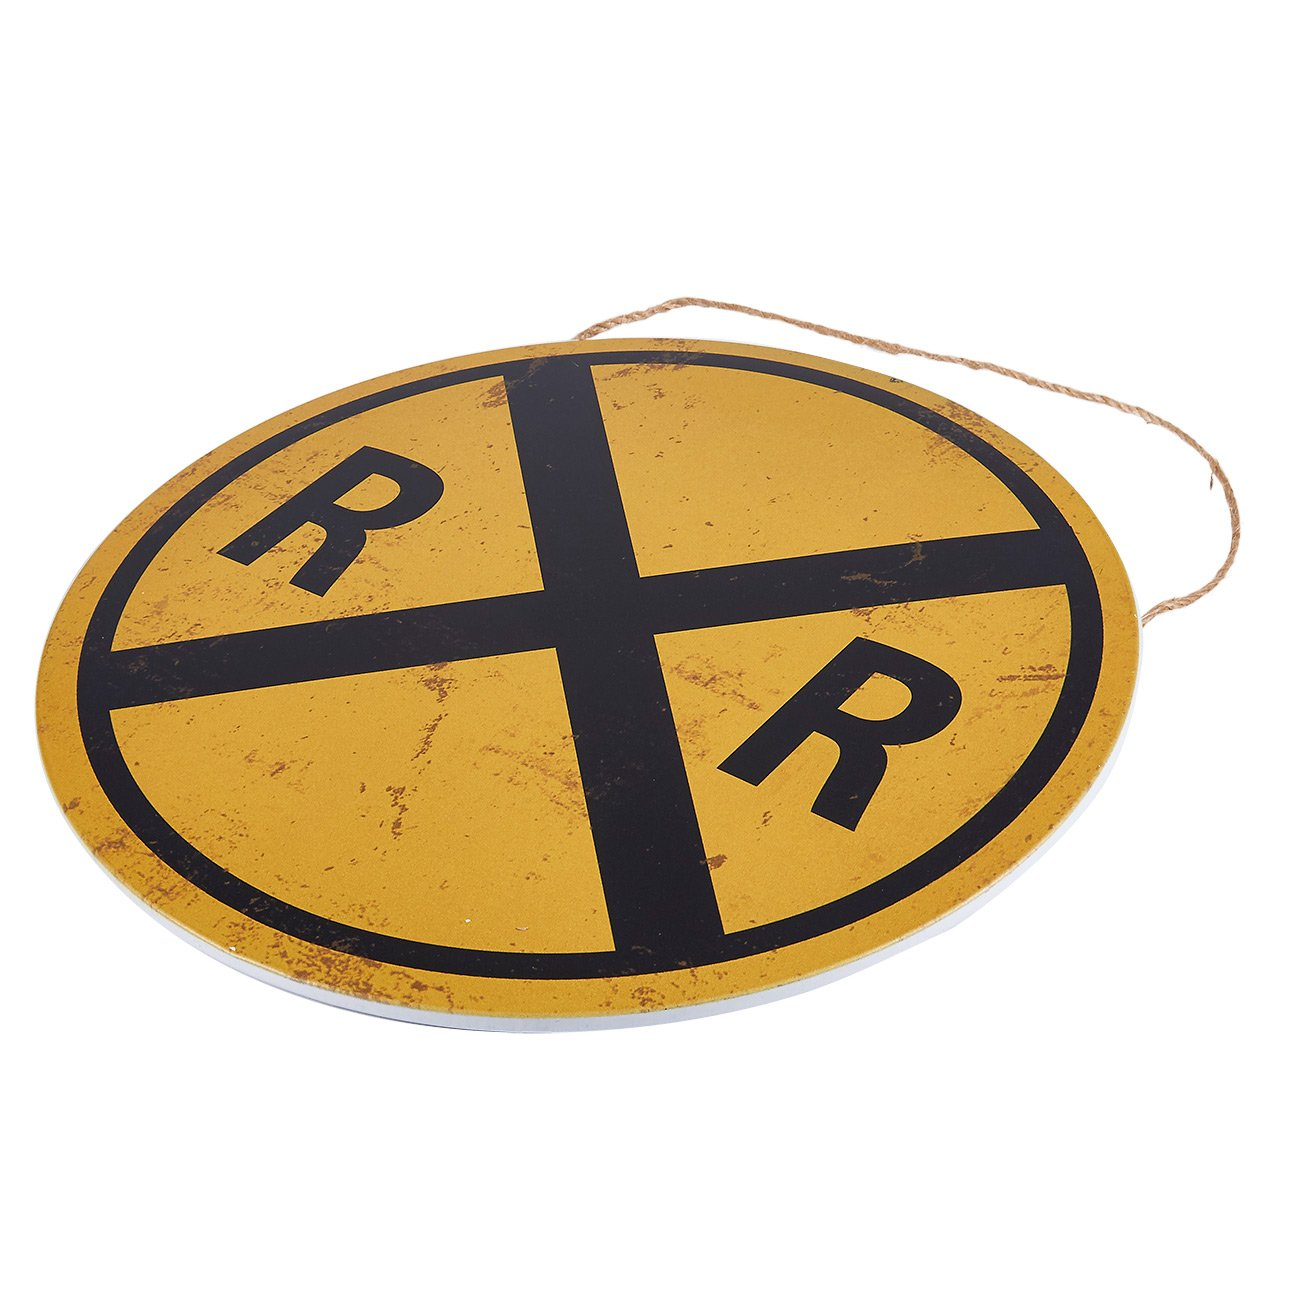 Party and Home Interior Decoration Restaurans 11.8 x 11.8 Inches Juvale Rail Road Crossing Symbol Sign Metal Tin Traffic Sign Wall Decor Perfect Cafes